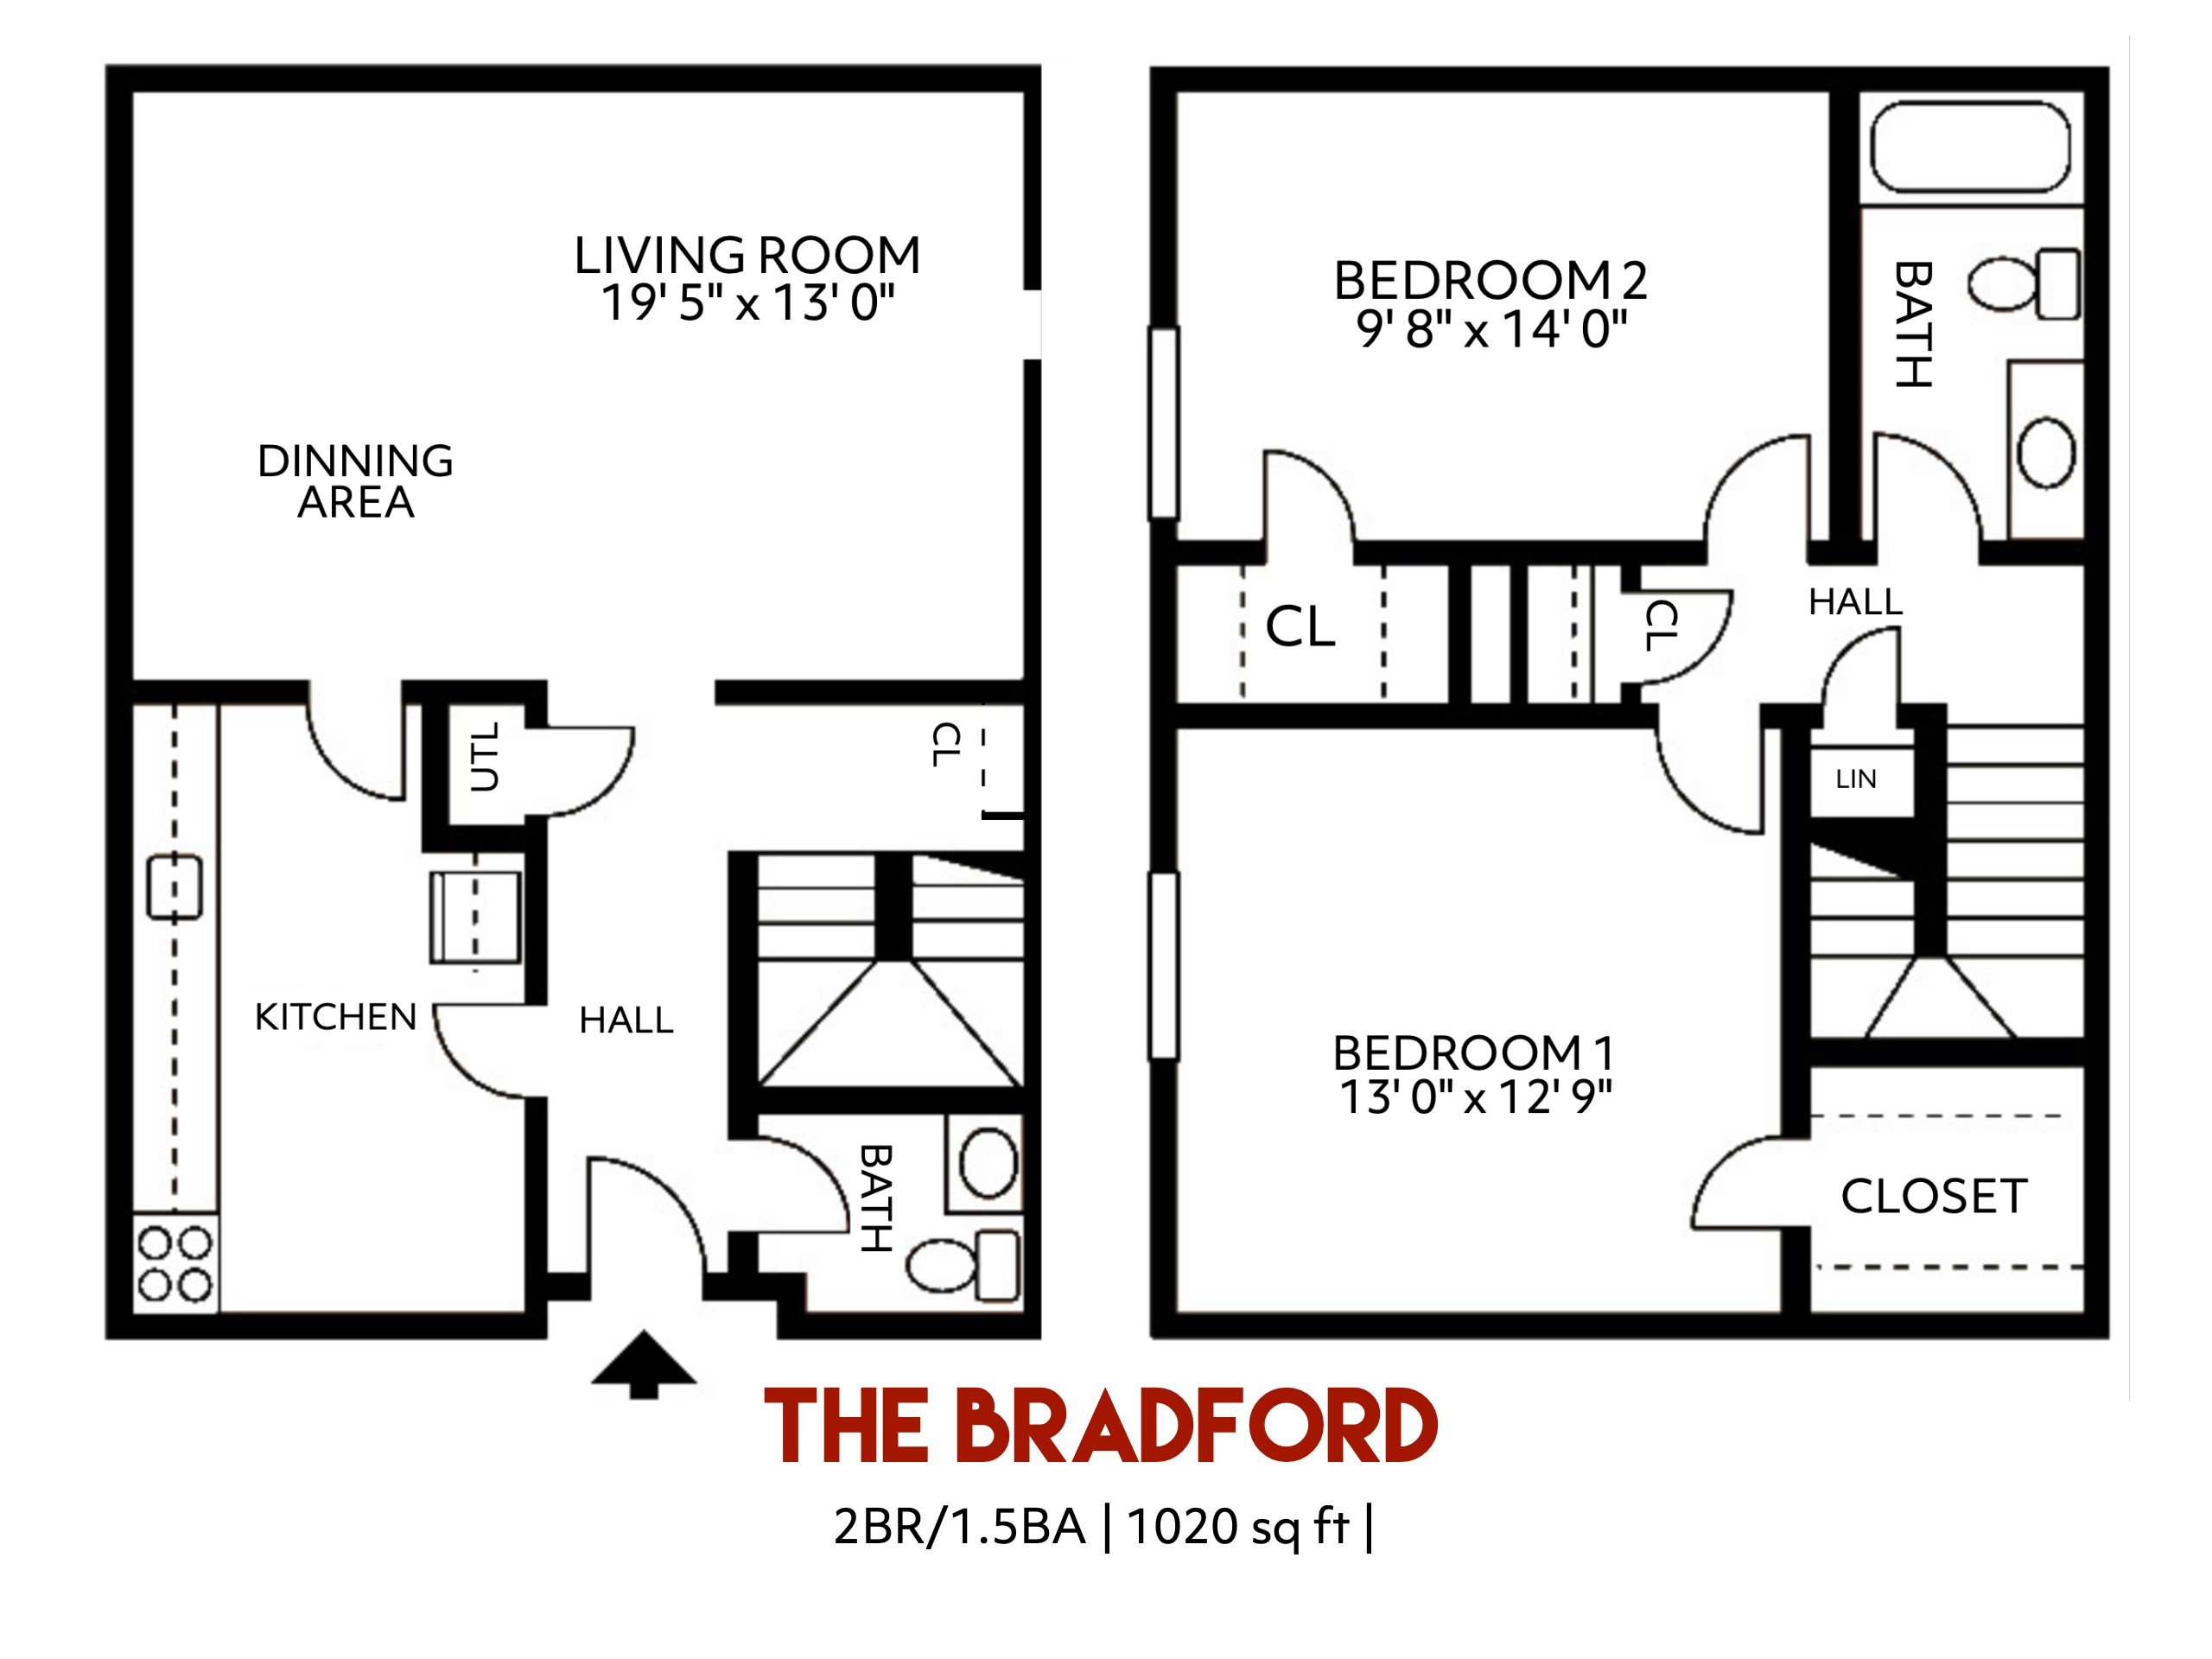 The Bradford Floorplan